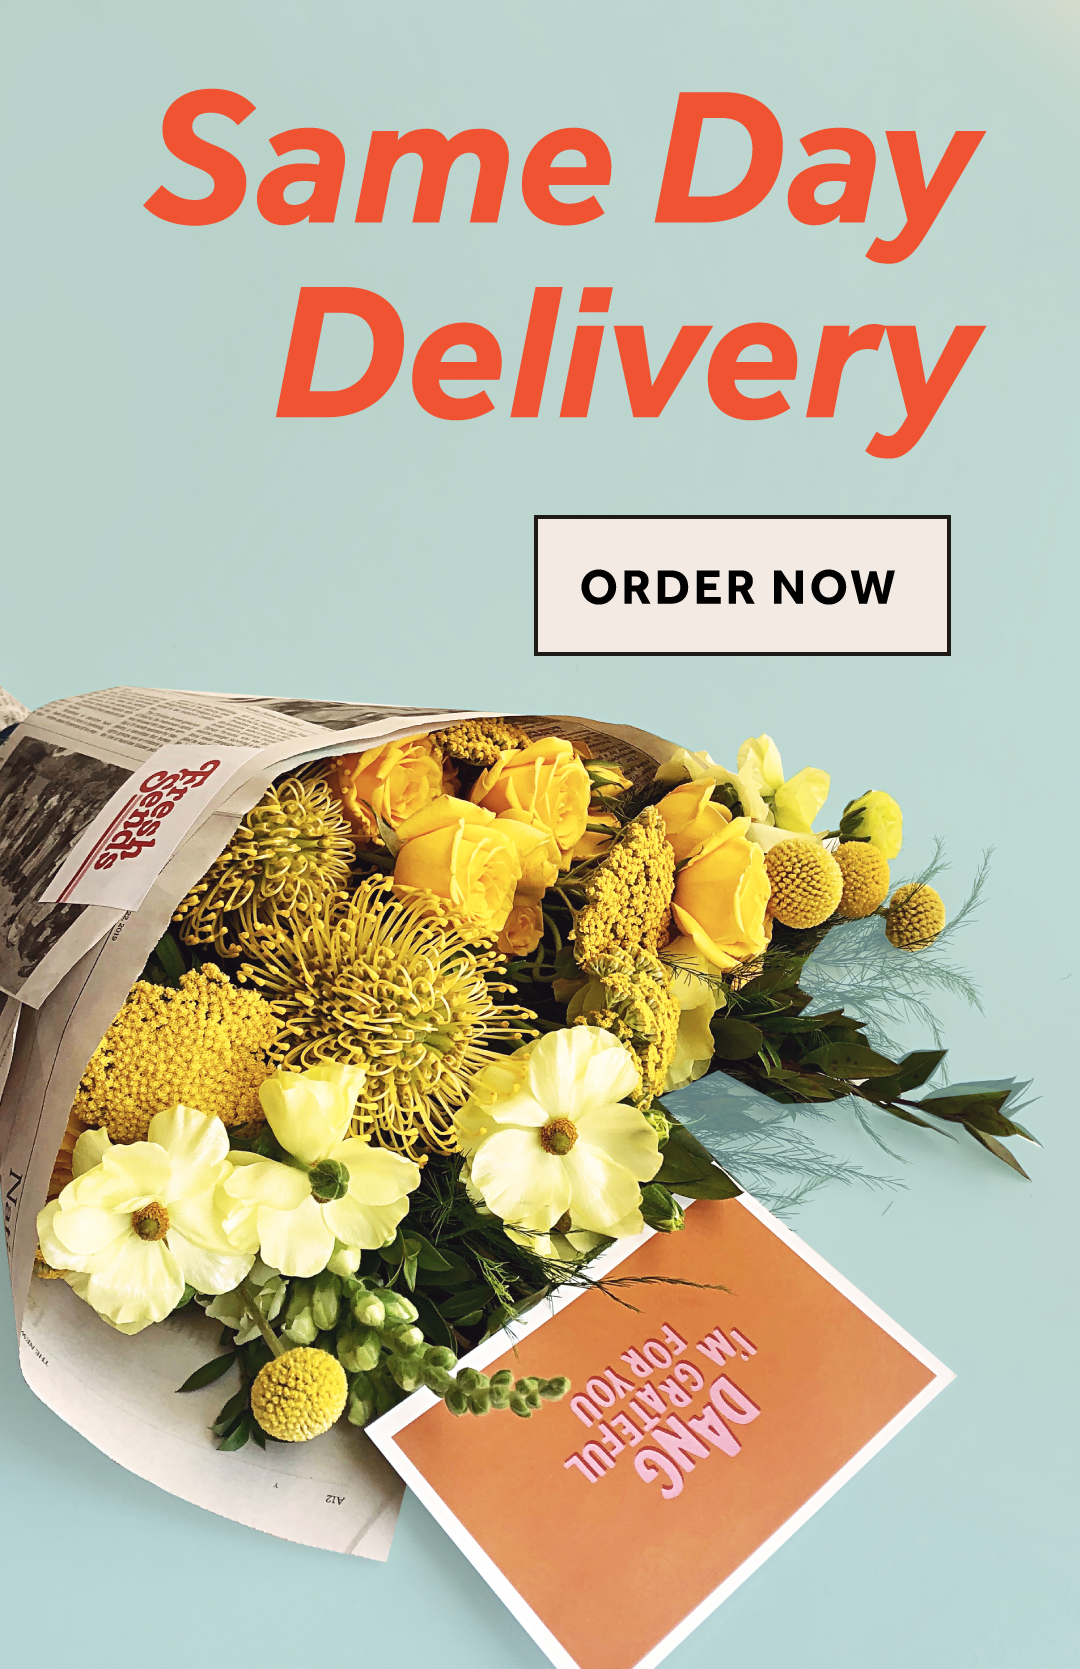 Order by 11am for same day delivery.